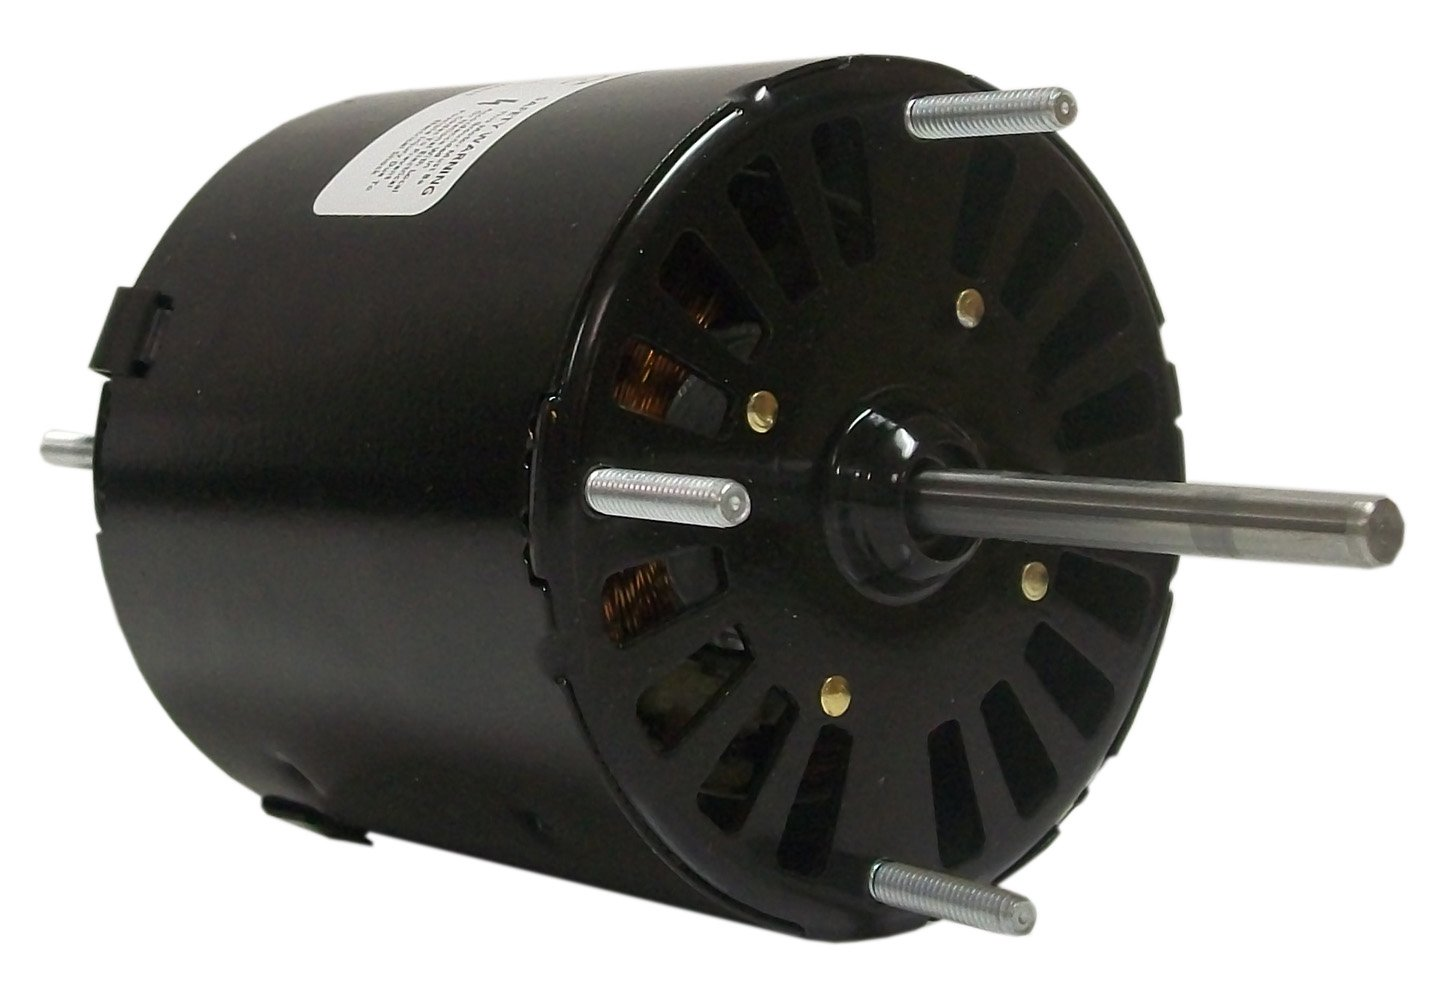 Fasco D202 3.3-Inch General Purpose Motor, 1/85 HP, 115 Volts, 3000 RPM, 1 Speed.6 Amps, OAO Enclosure, CWSE Rotation, Sleeve Bearing